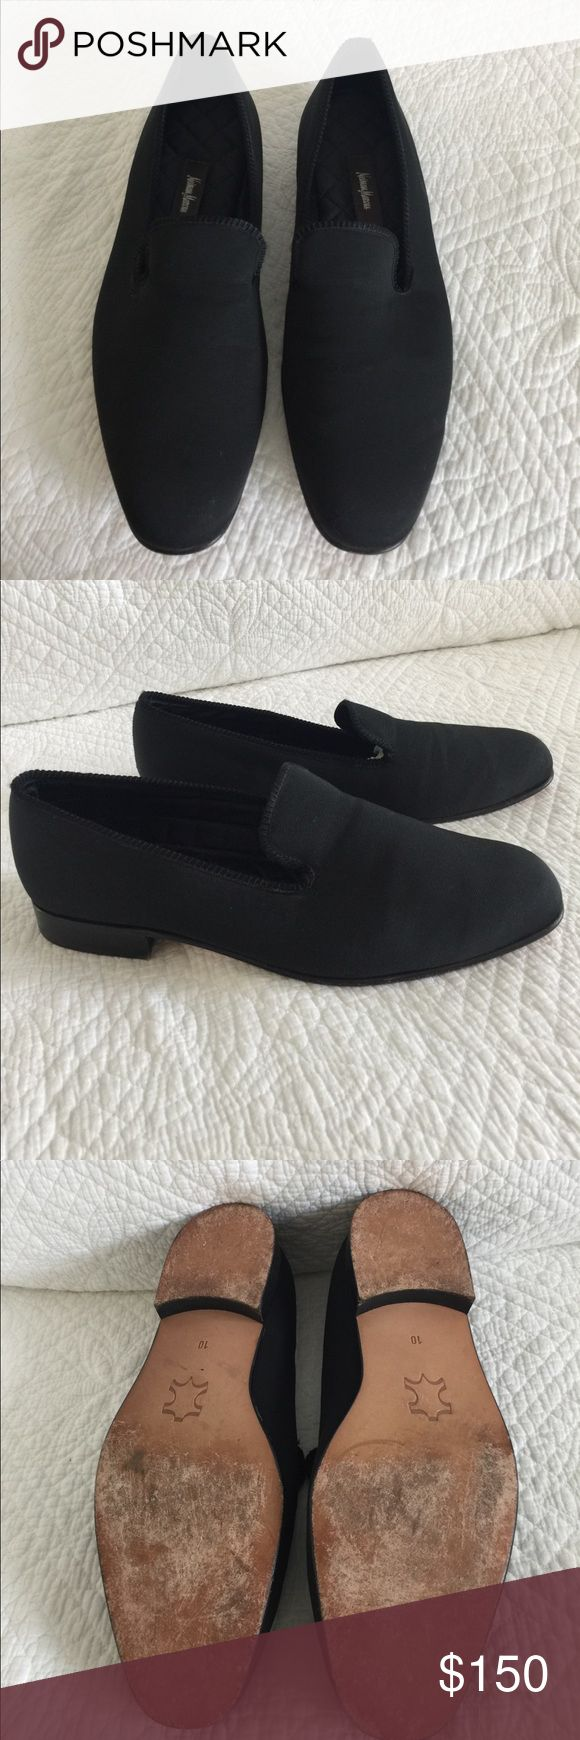 Neumann Marcus tux shoes black Great pair of men's tux shoes in black fabric Neiman Marcus Shoes Loafers & Slip-Ons